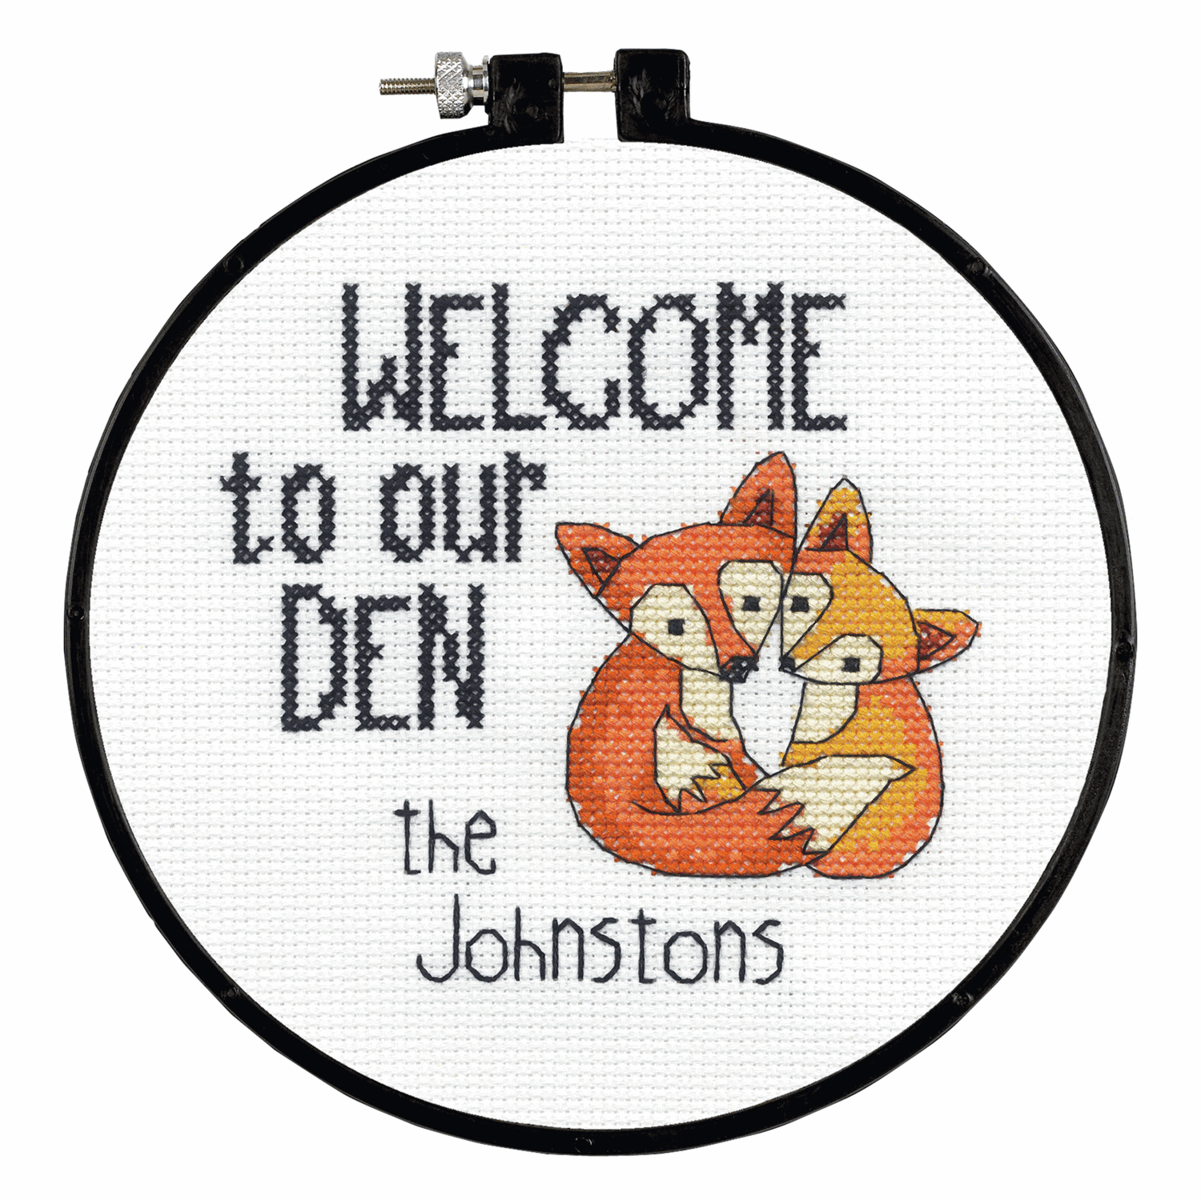 Picture of Learn-a-Craft: Counted Cross Stitch Kit with Hoop: Our Den